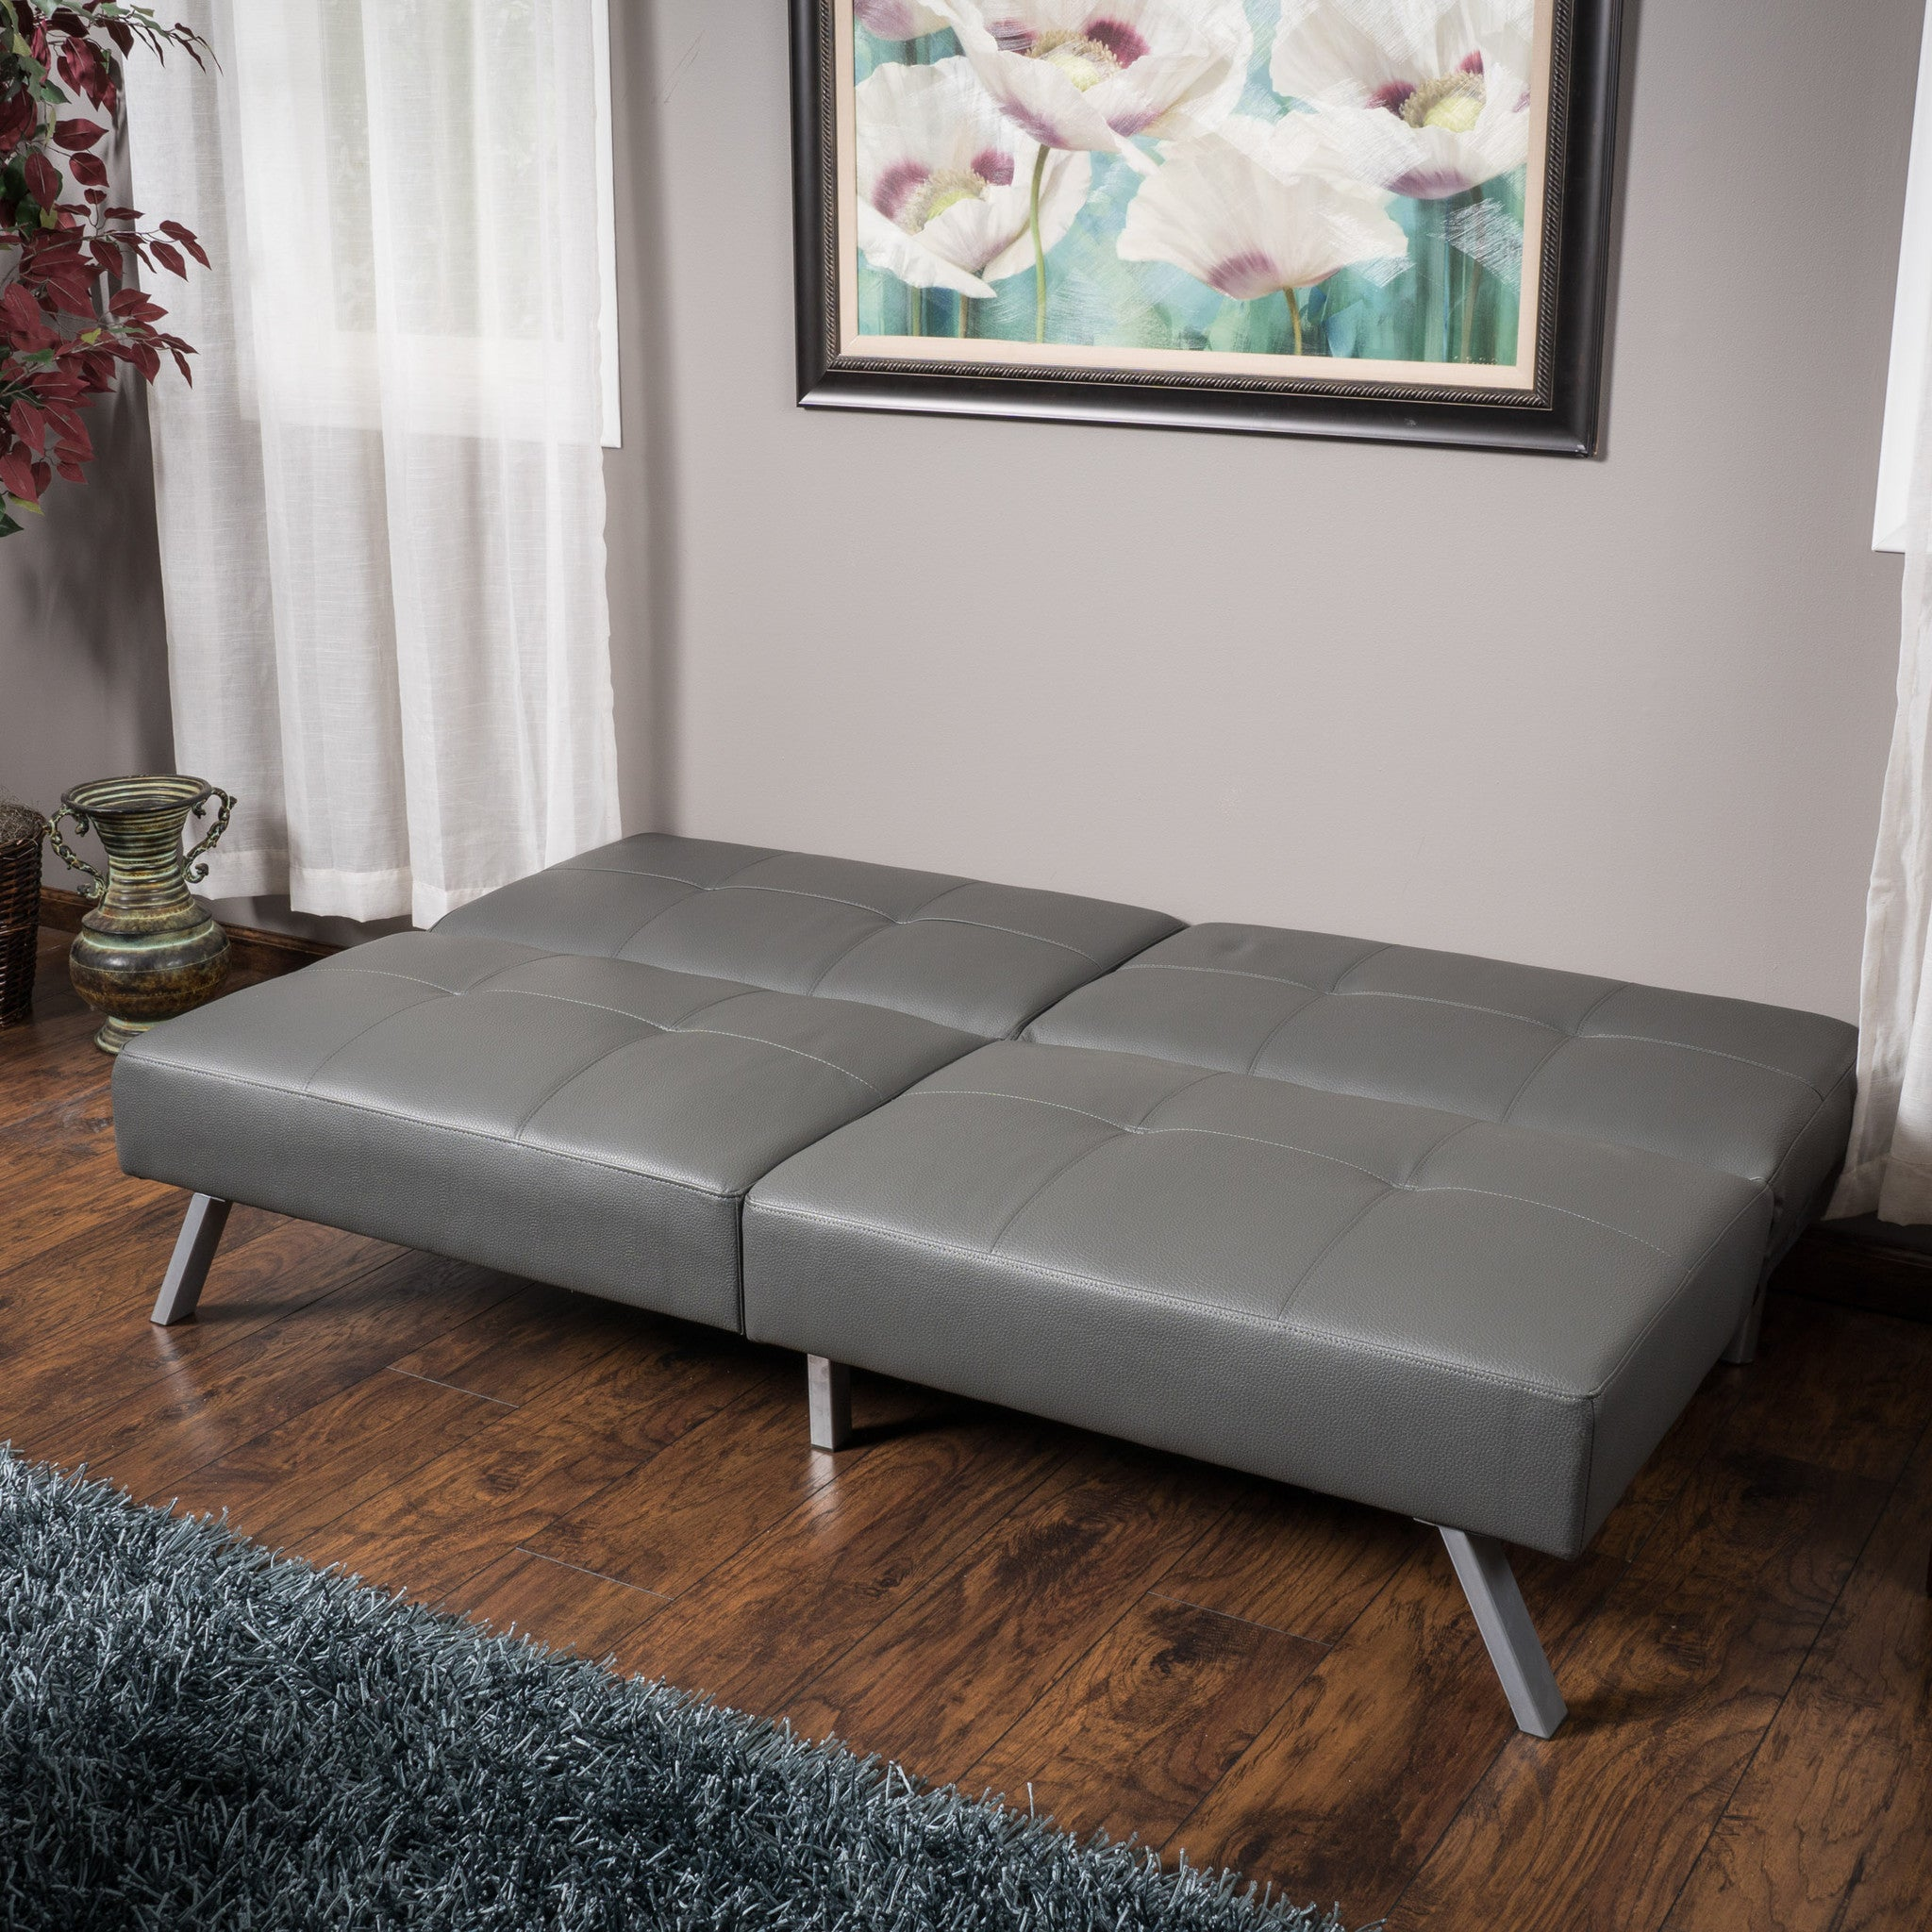 bed decor fastfurnishingscom faux futon trends click clack white color sofa home simple l leather